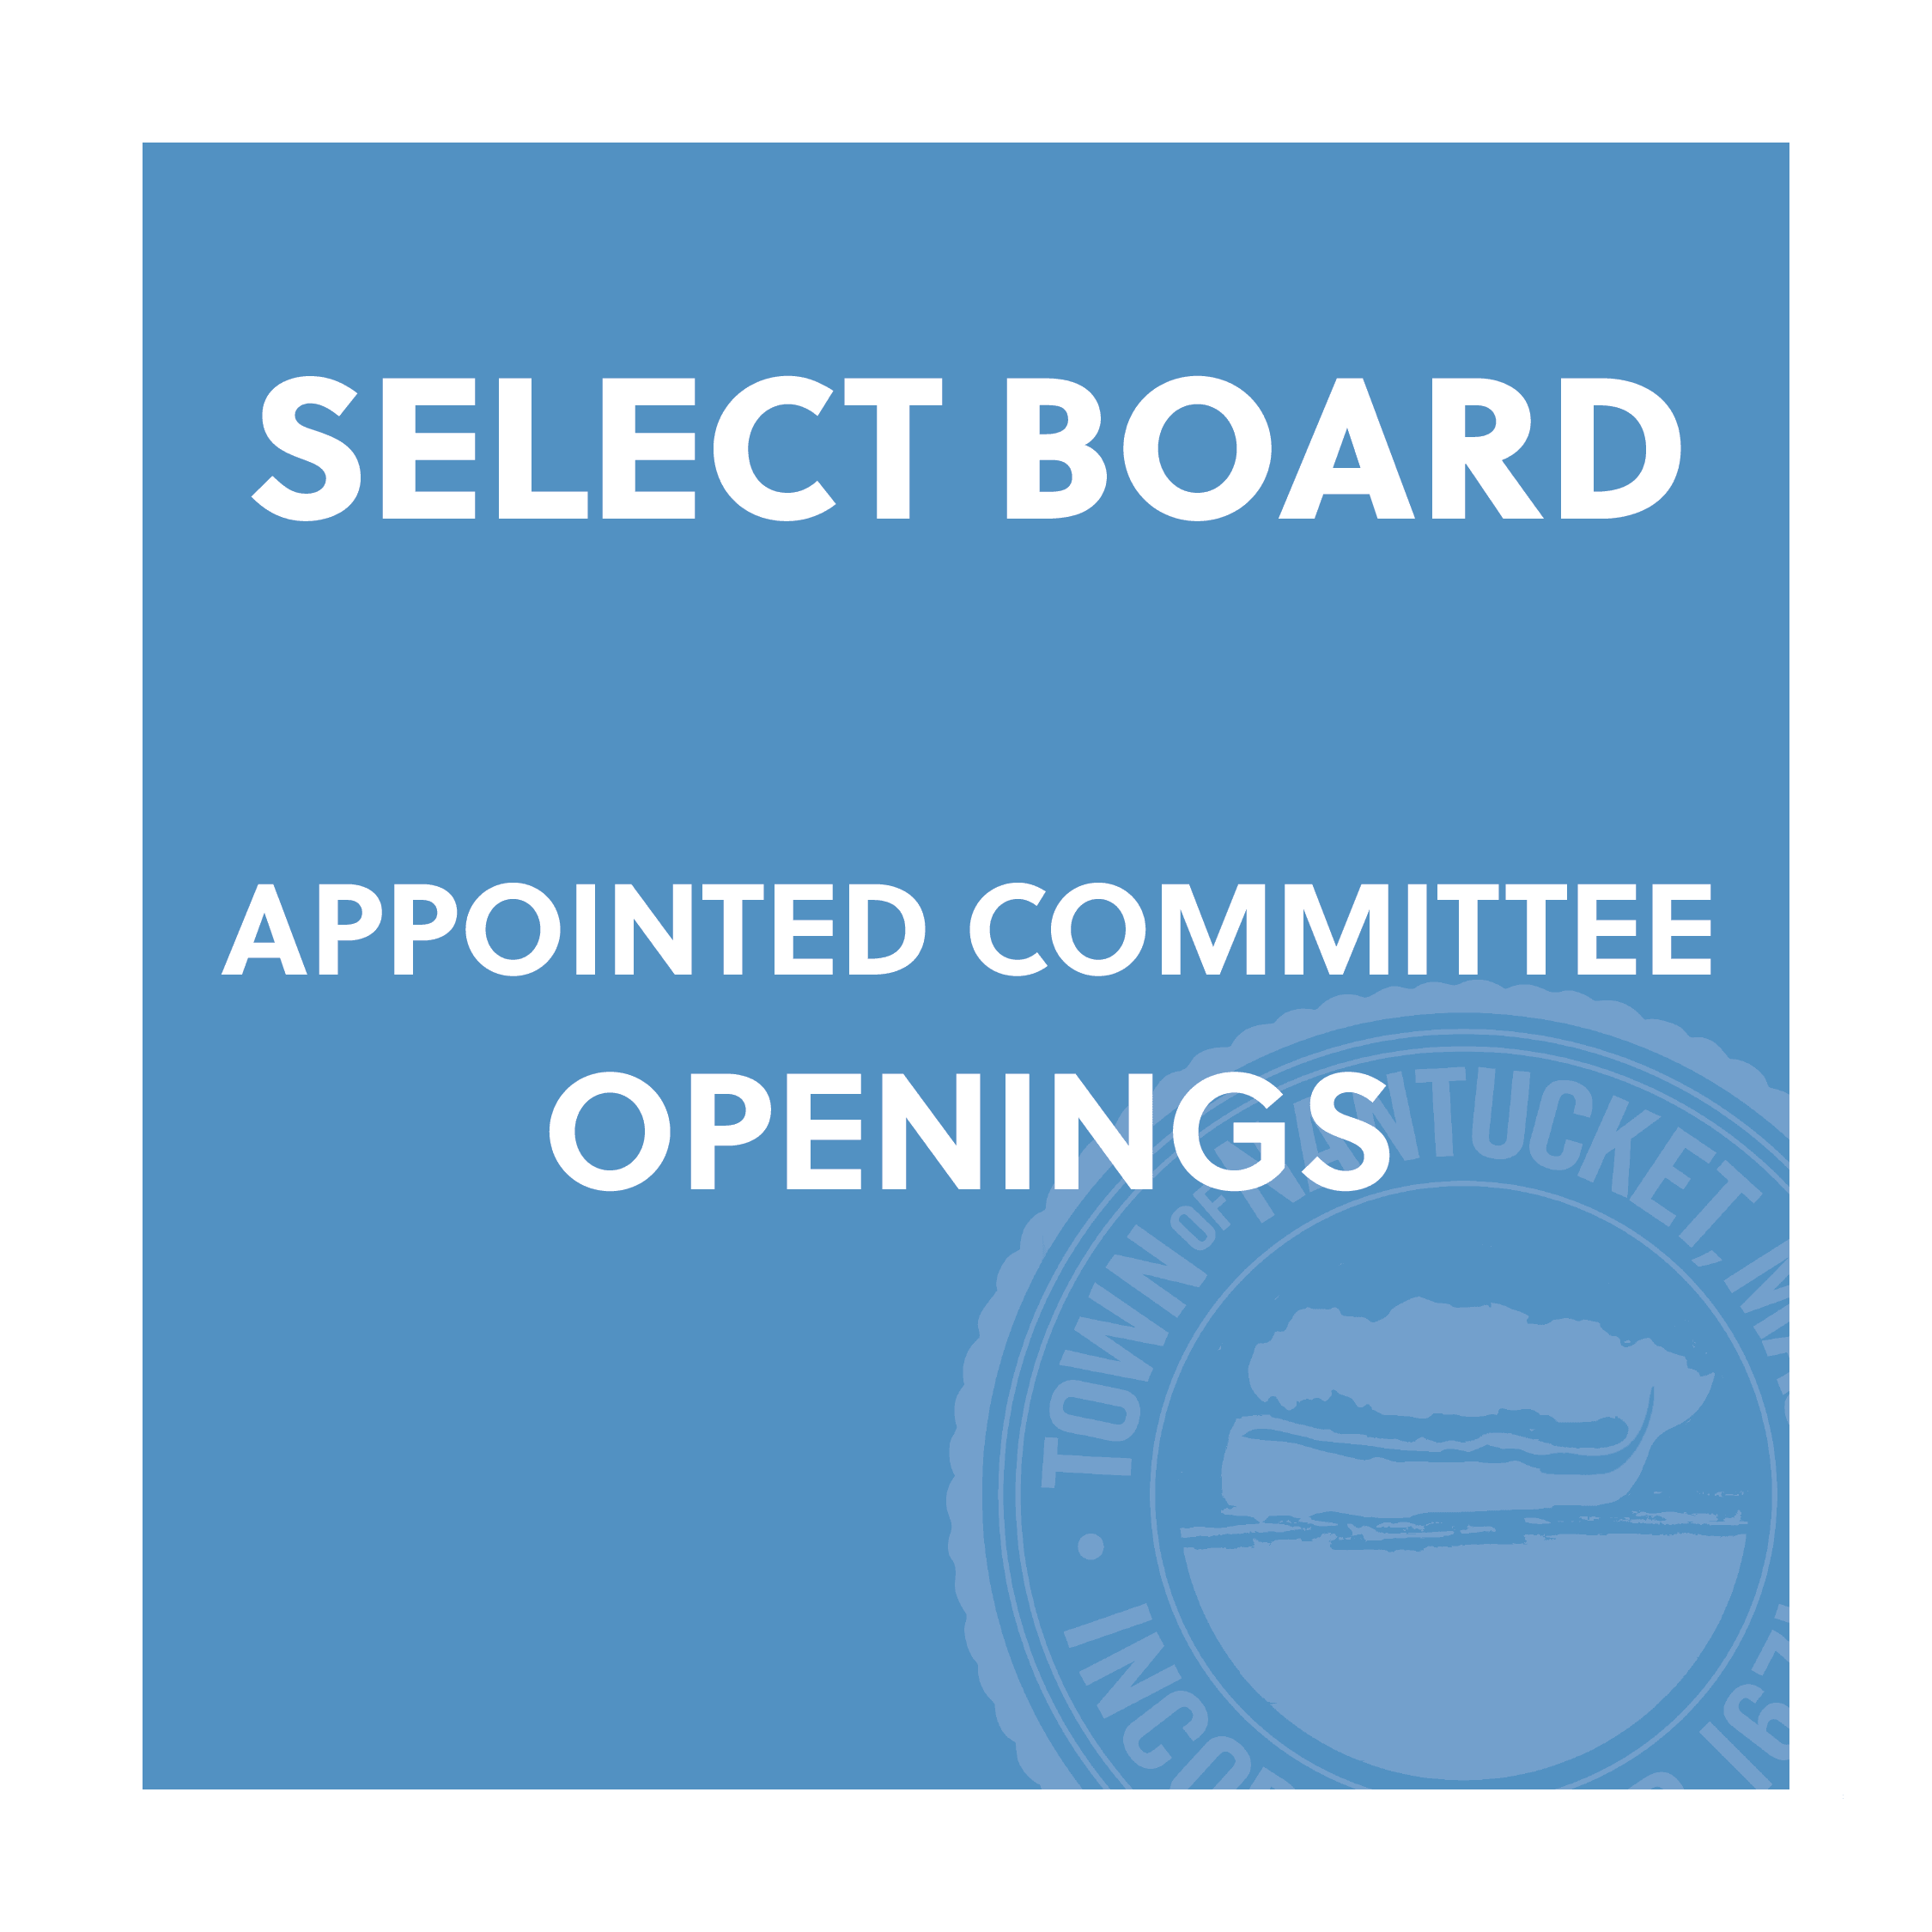 Select Board committee openings 2021